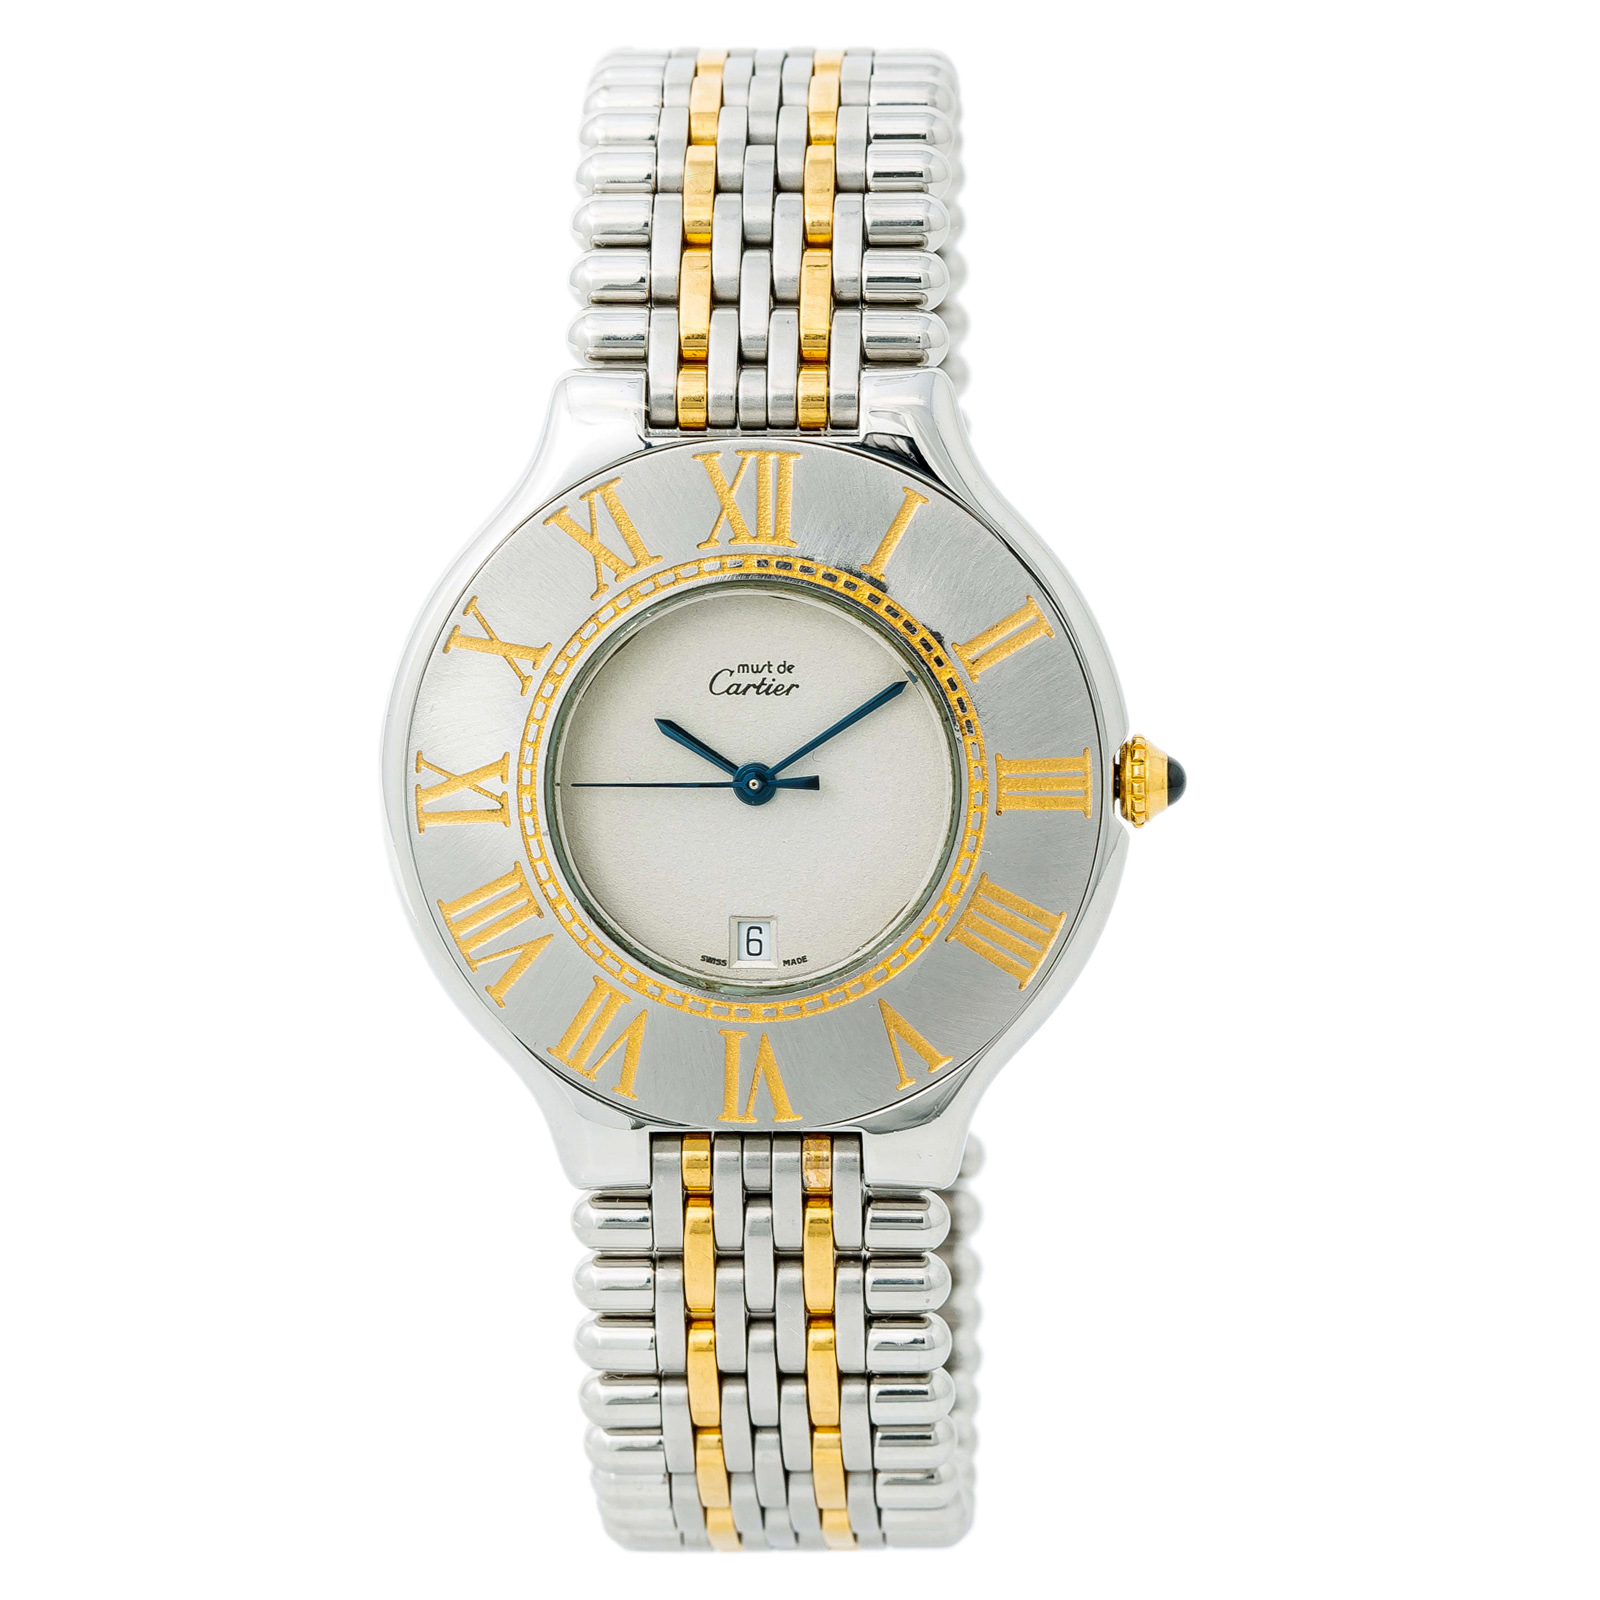 da49da028af3 Details about Cartier 21 Must De Cartier Womens Quartz Watch Cream Dial Two  Tone Ss 35mm